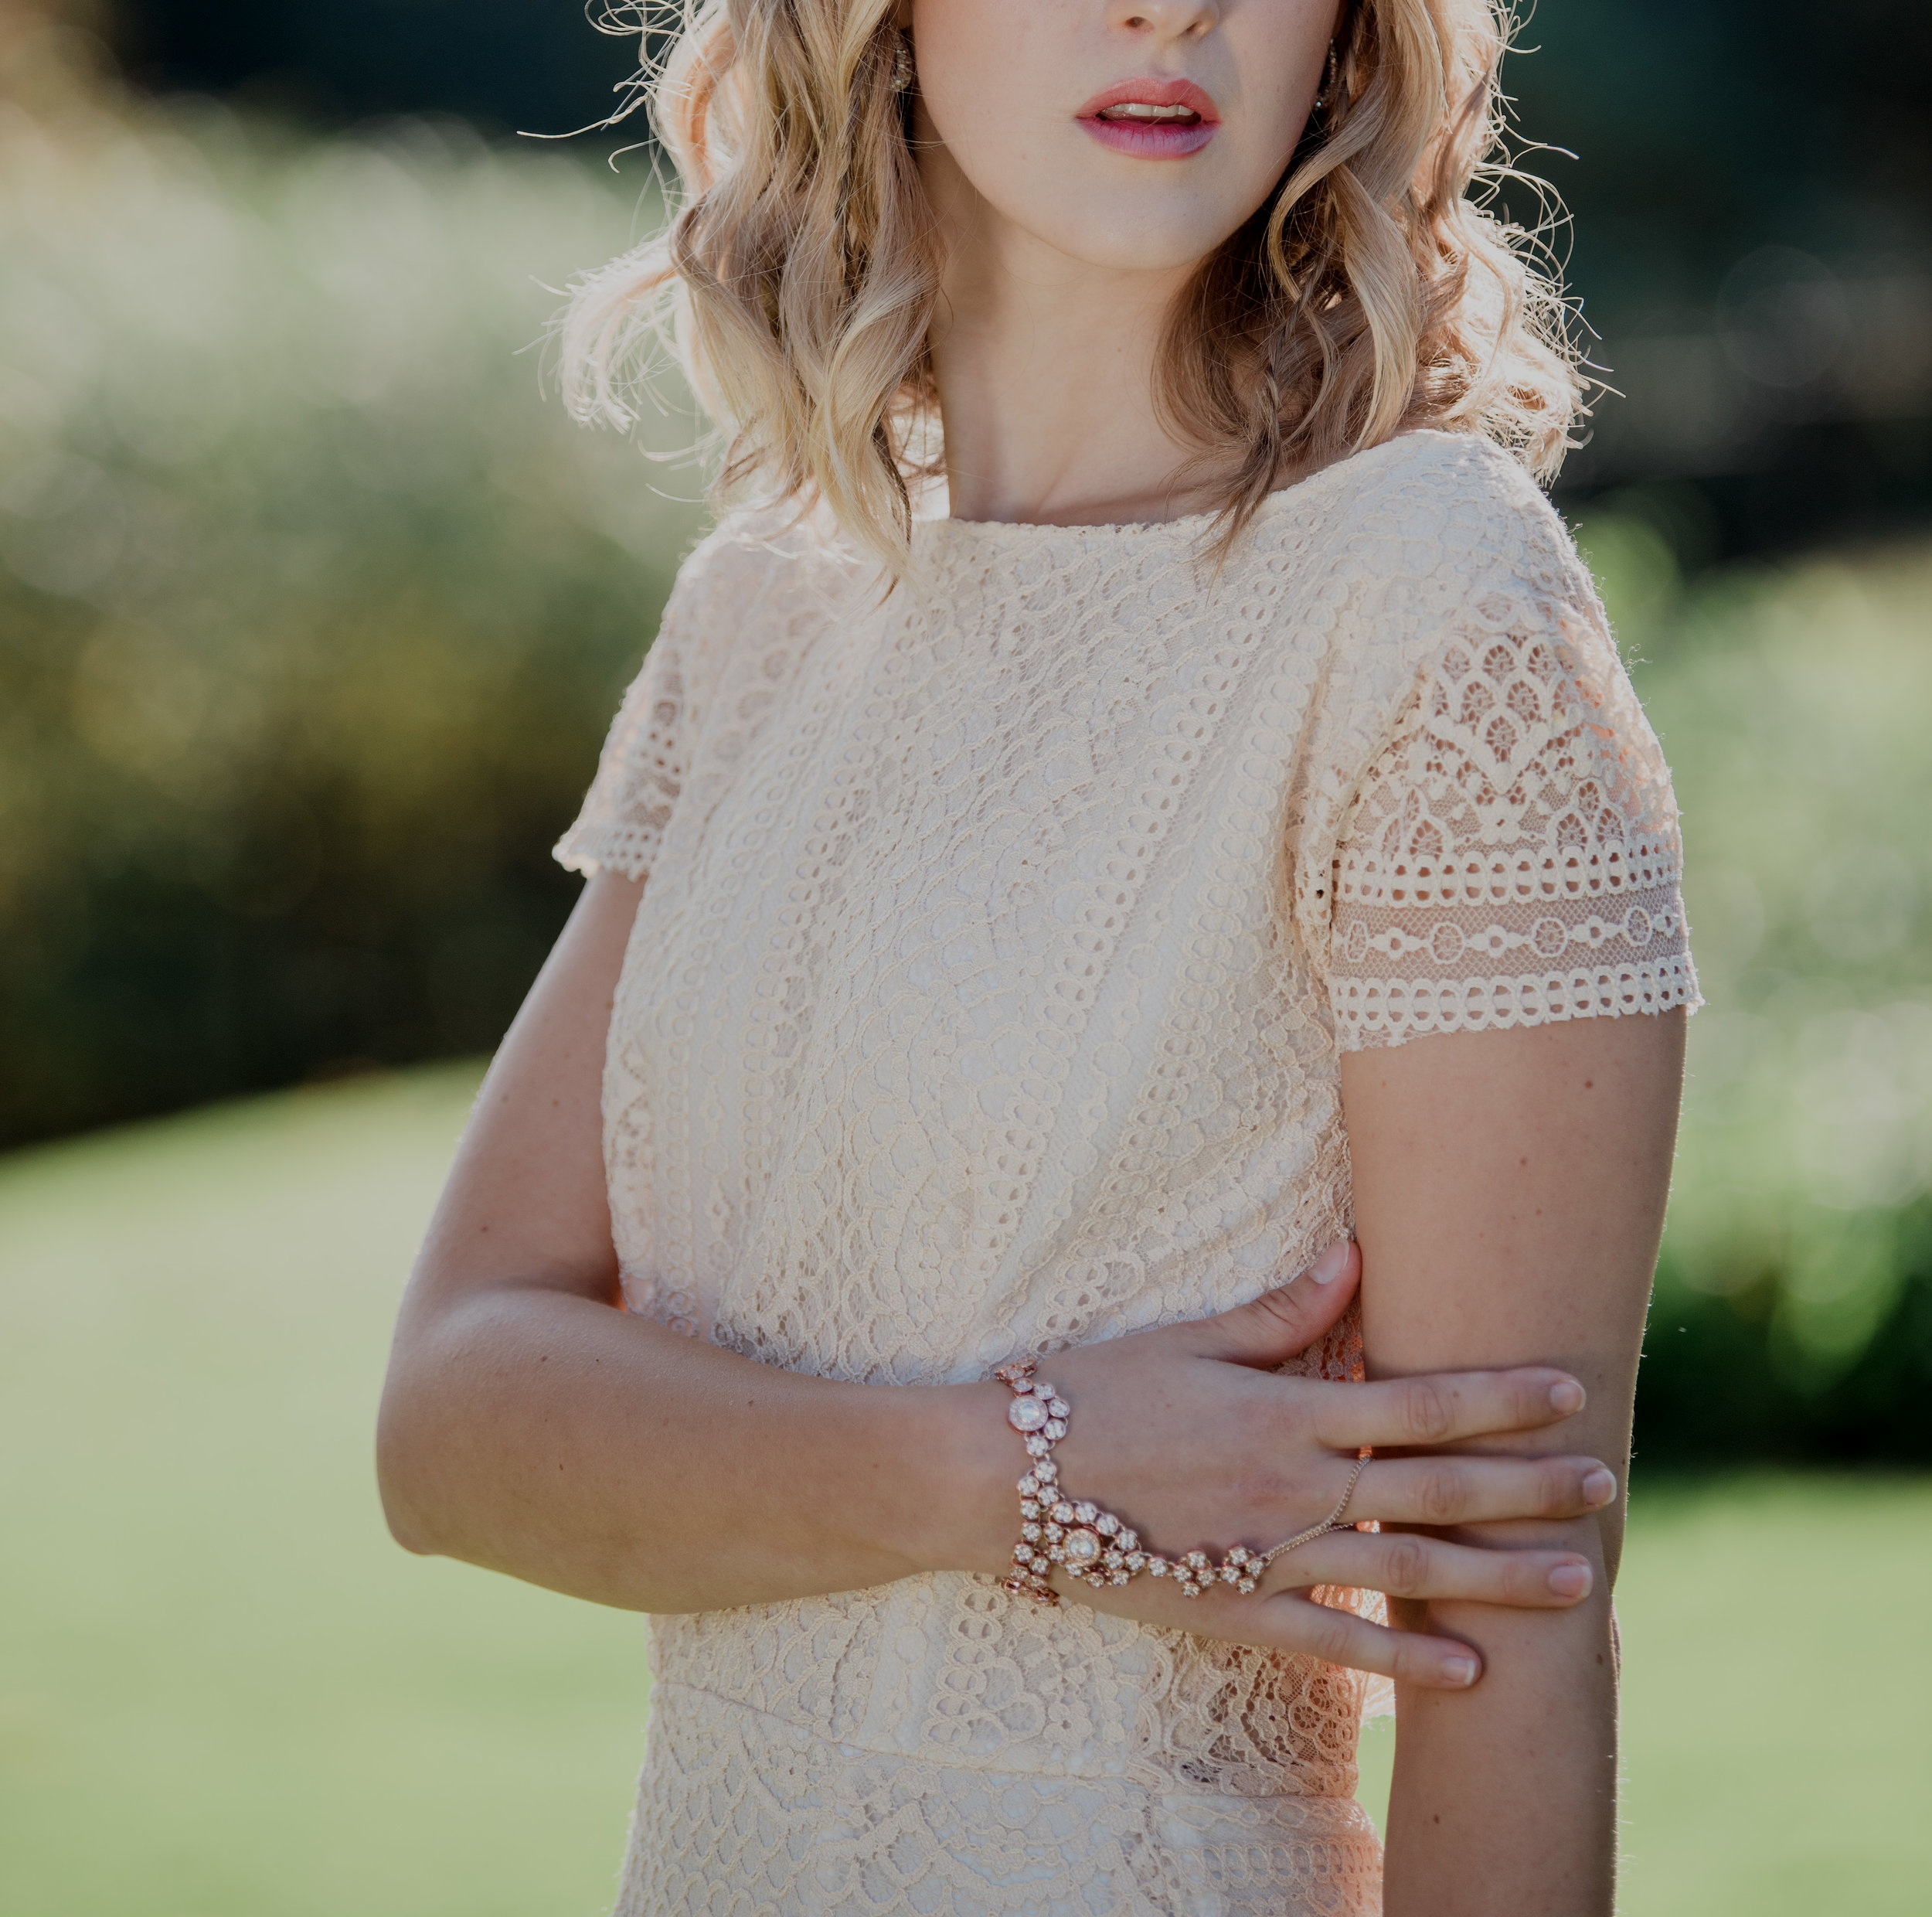 2018 Fall styled shoot (55)-DL.jpg